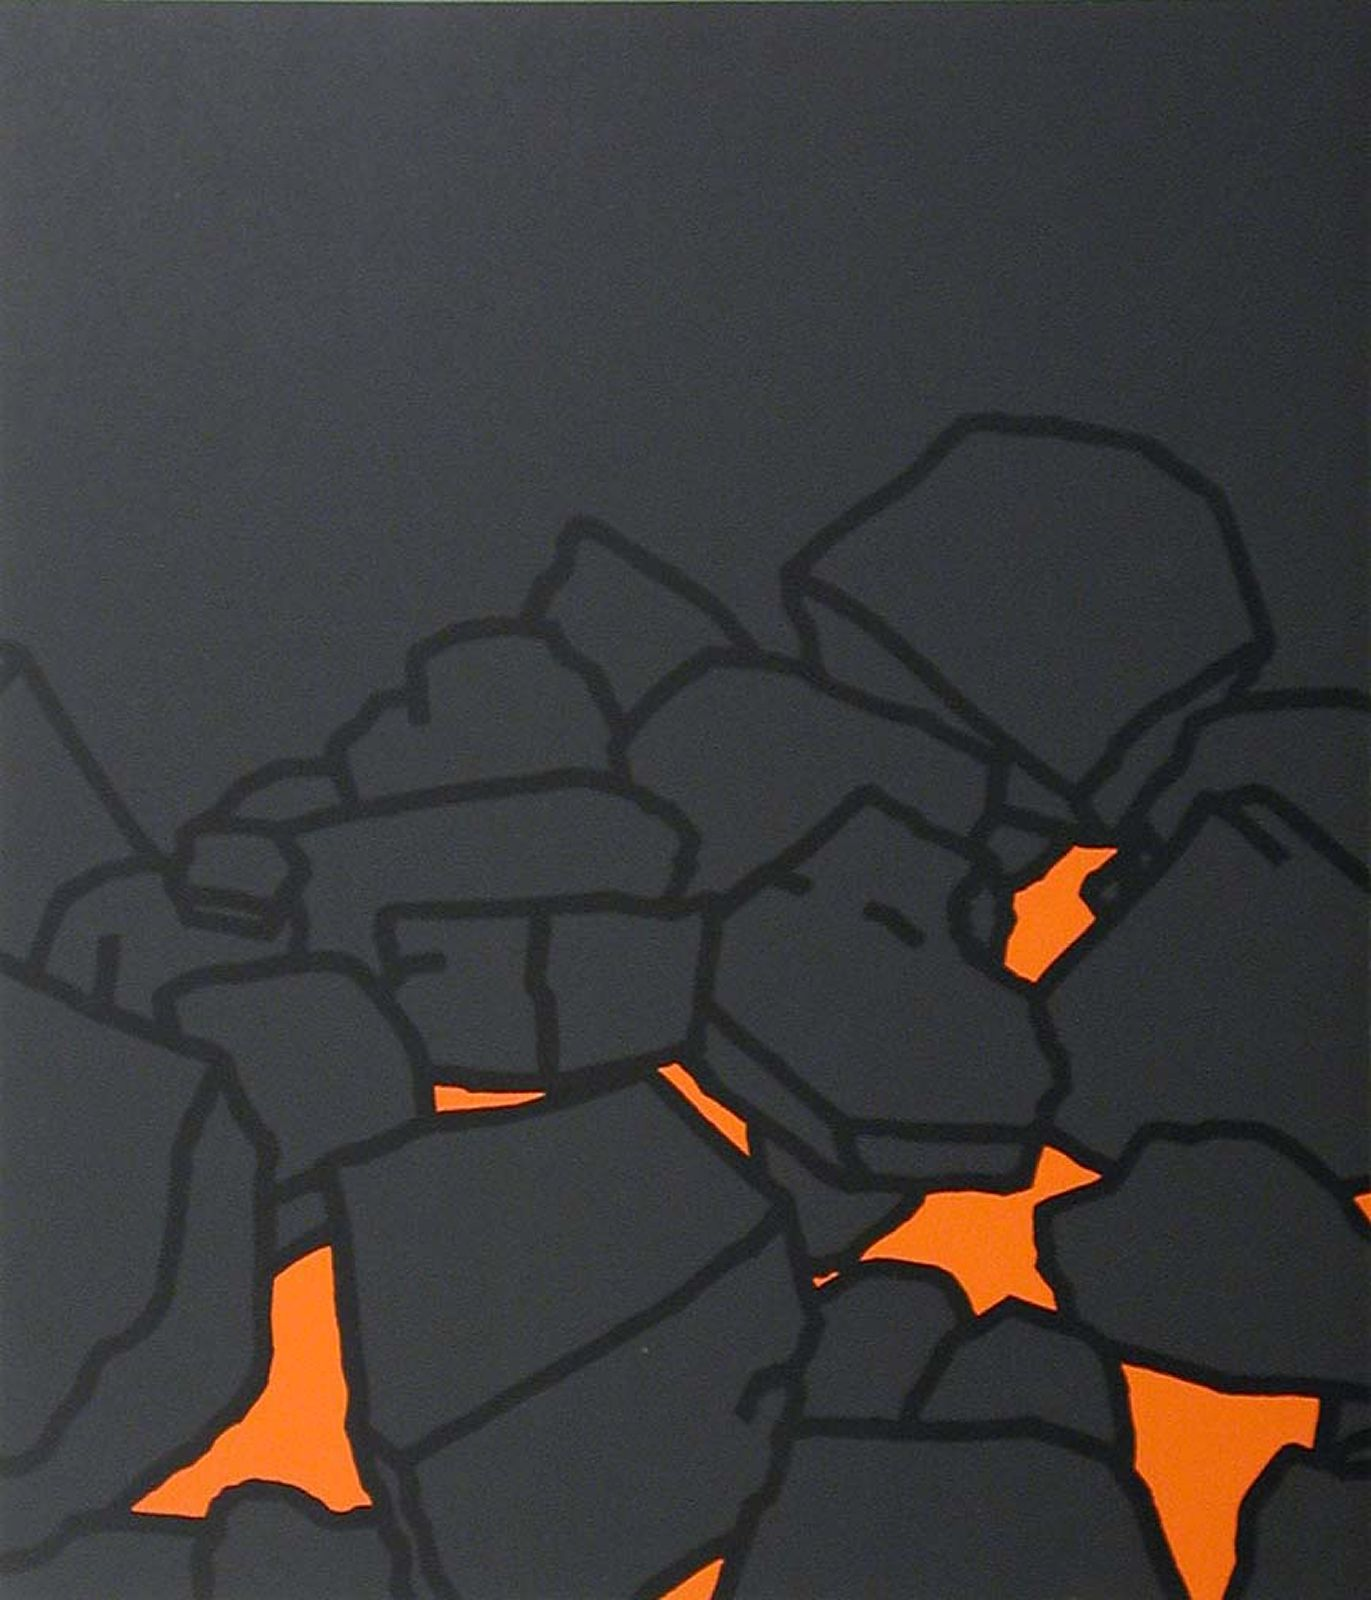 ART & ARTISTS: Patrick Caulfield - part 1